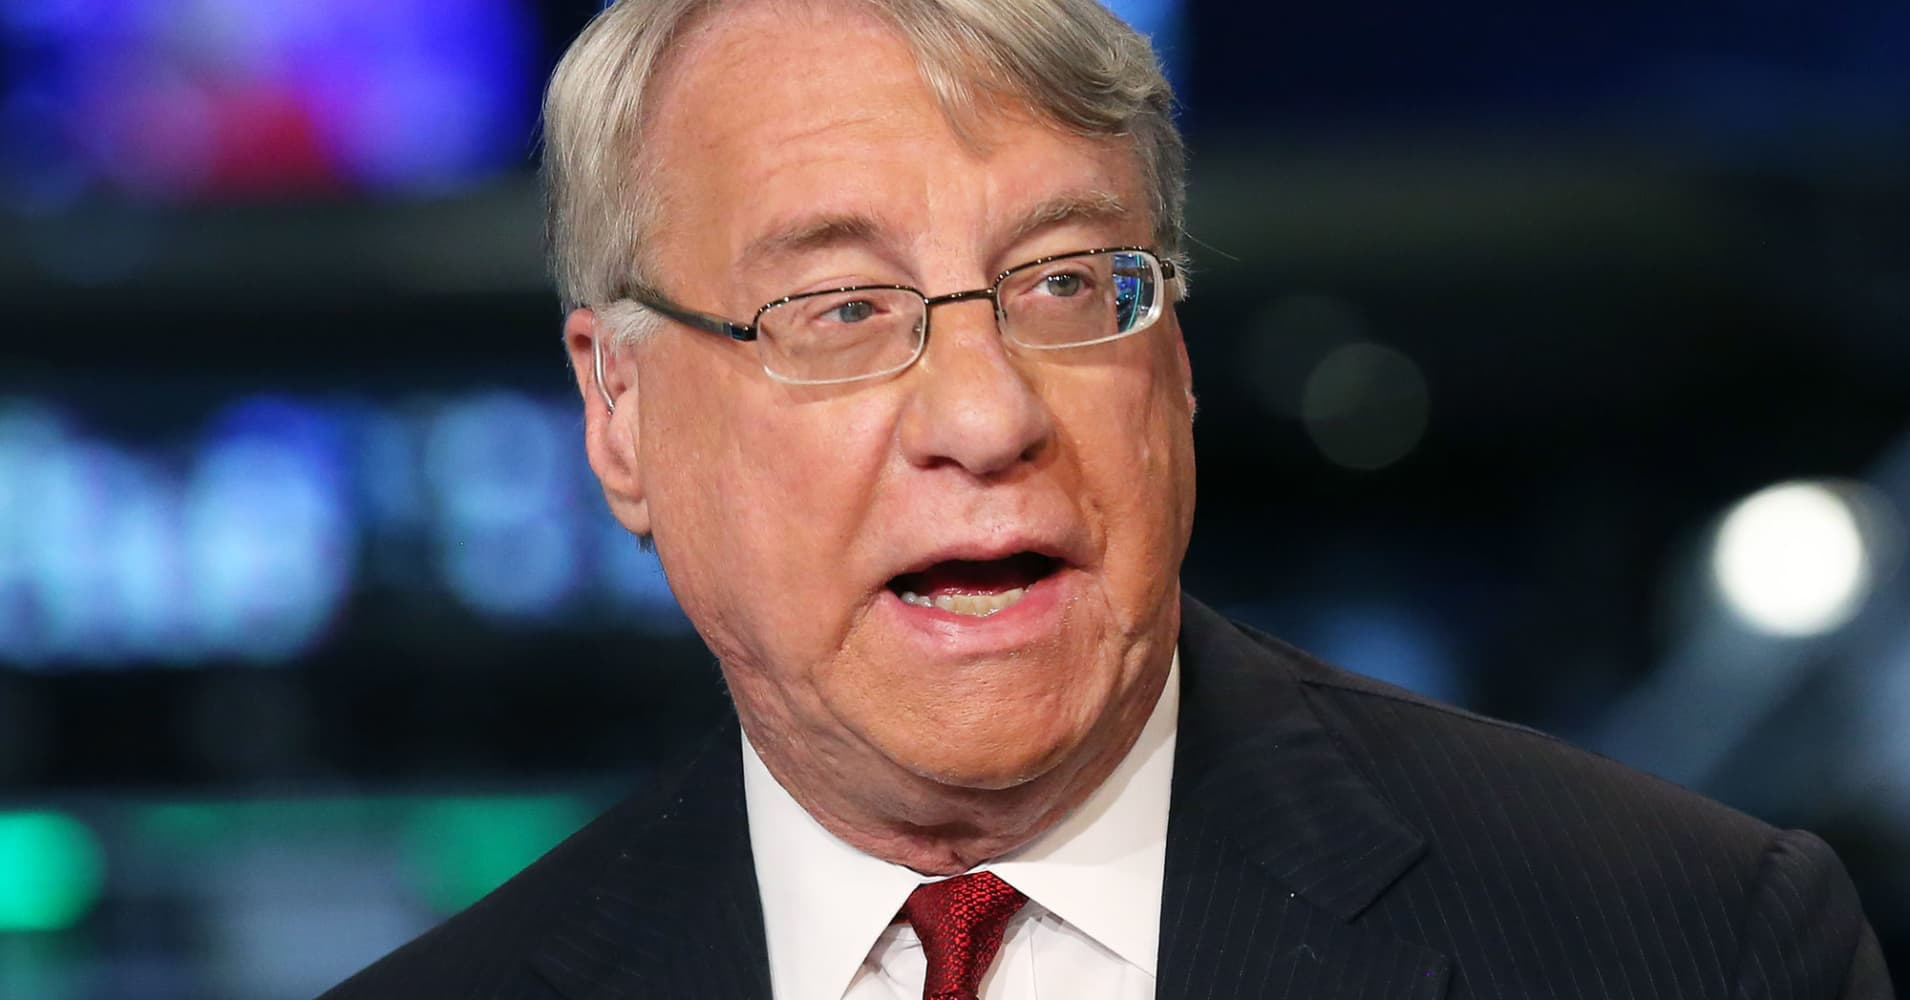 Short-seller Jim Chanos says Elon Musk 'may be misleading investors'